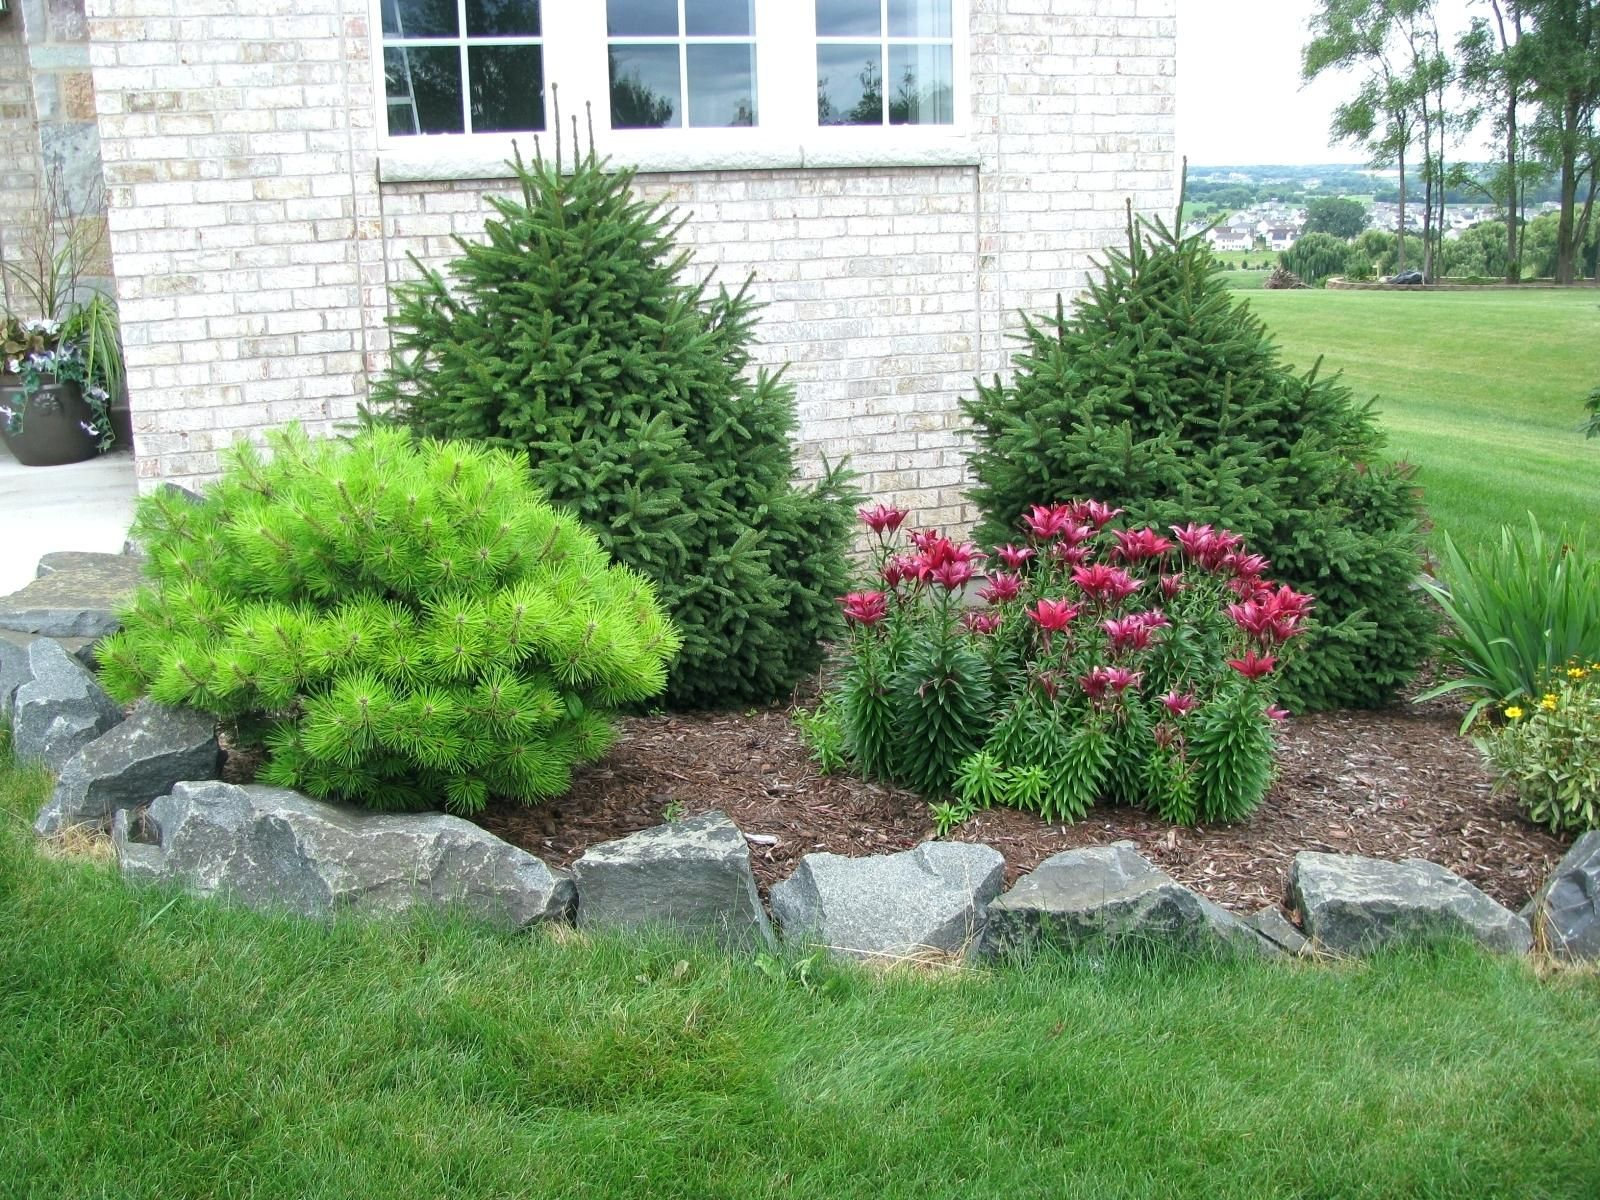 1000 Images About Landscaping Borders Pa Pinterest Tradgardar Upphajda Parlor